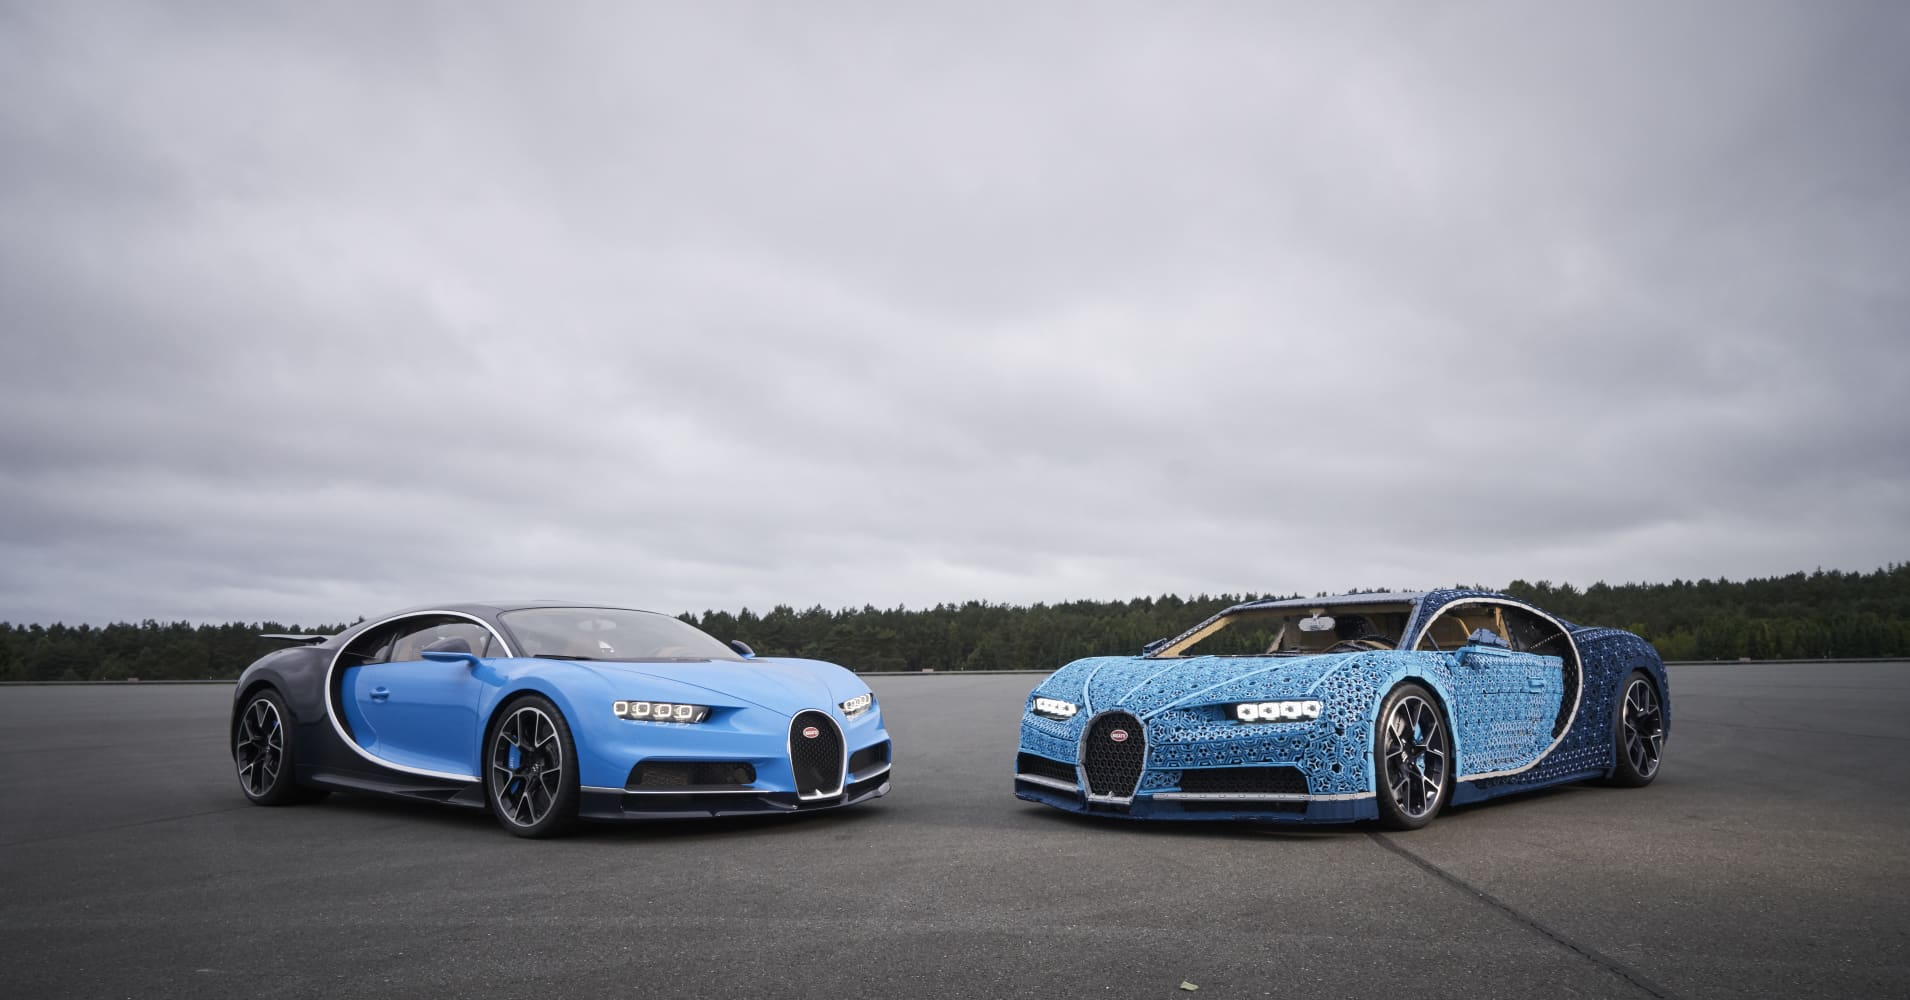 This life-size, driveable Bugatti Chiron supercar is built entirely from Legos — take a look